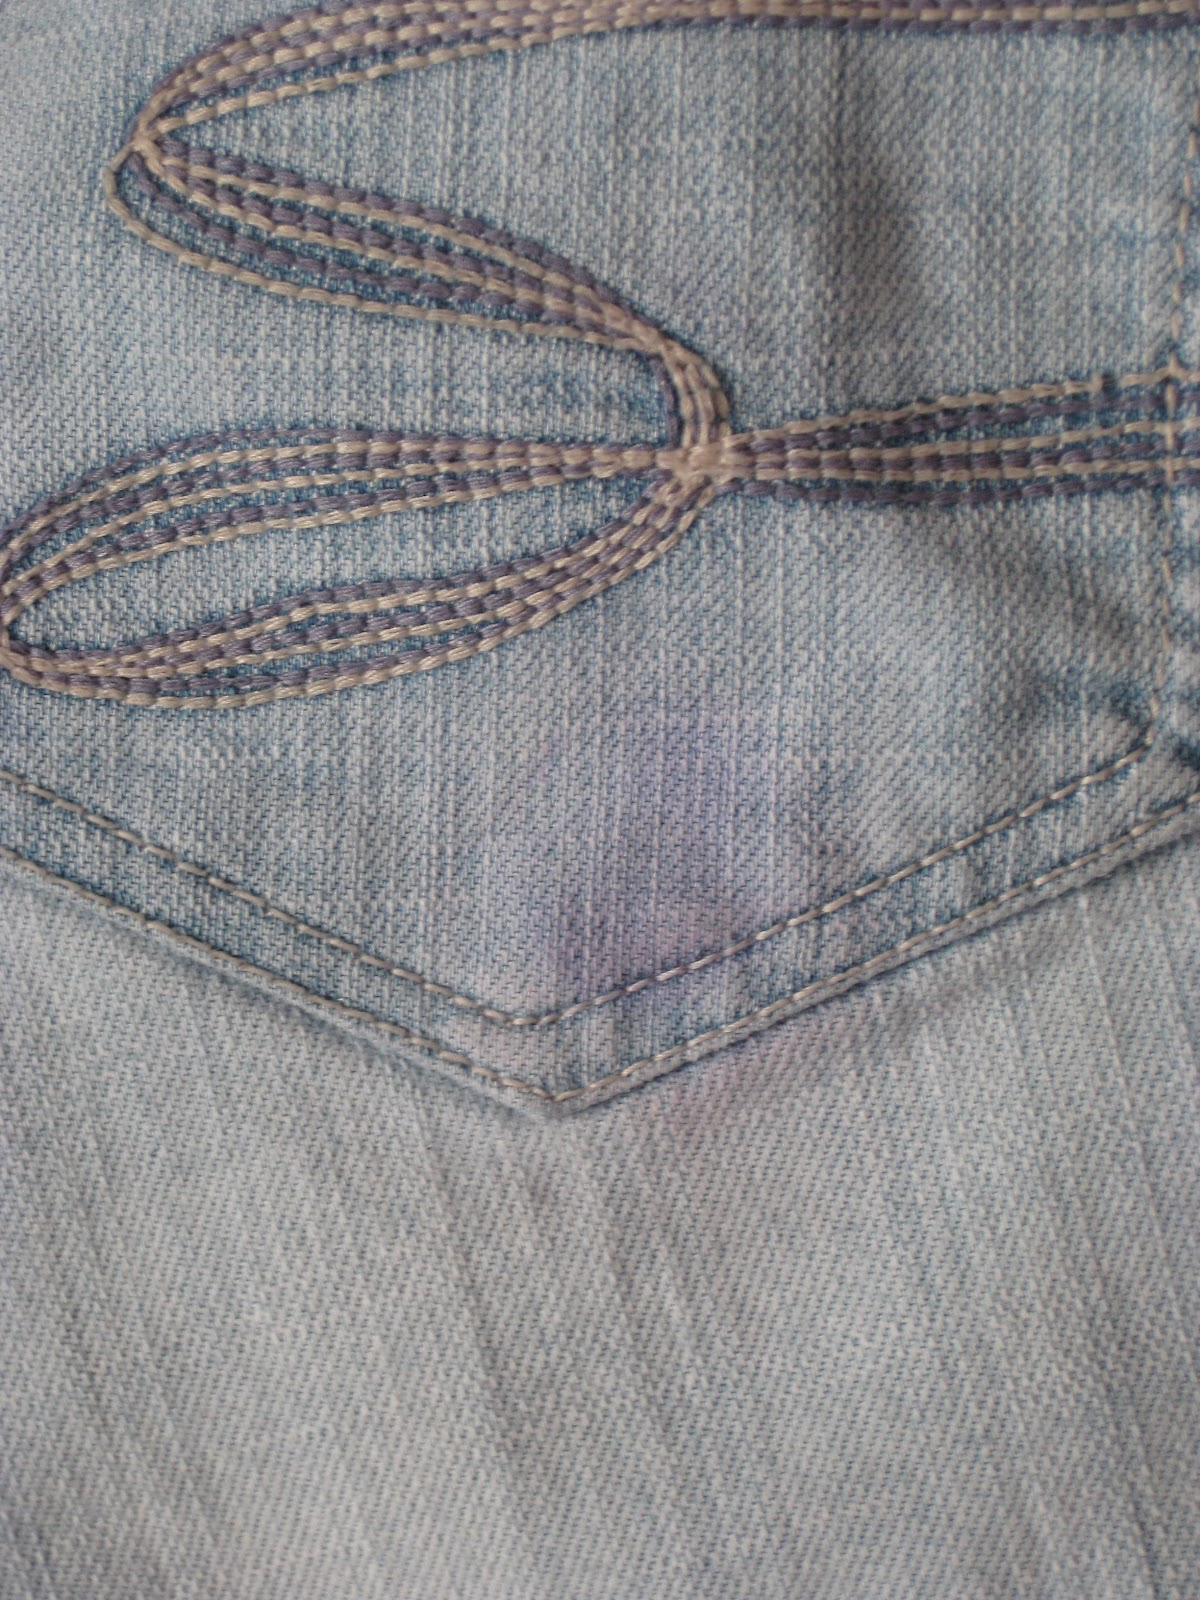 Dandelion Dreamer: How To Get Sharpie Out of Jeans